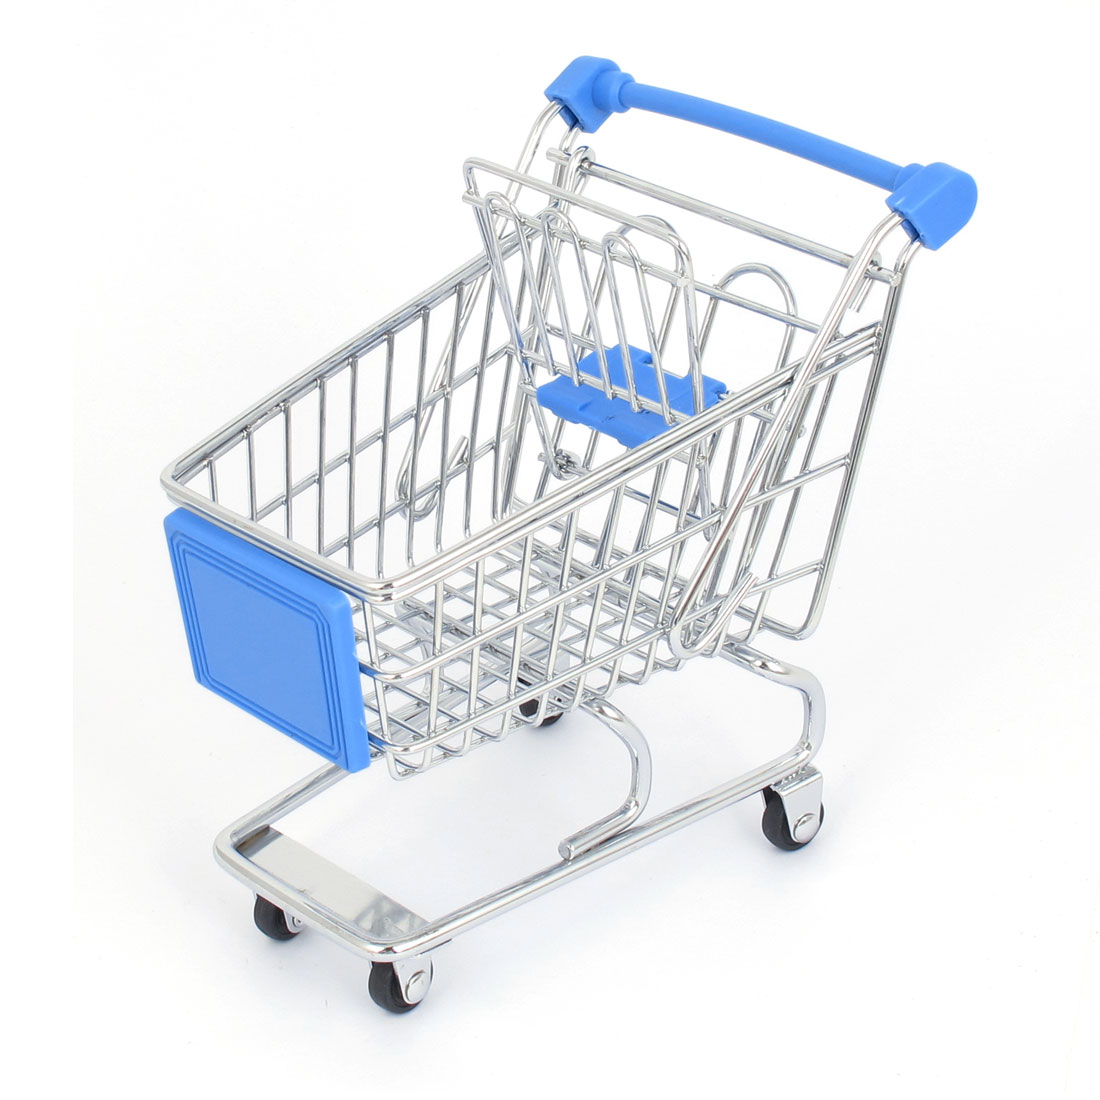 Stainless Steel Supermarket Mini-Shopping Handcart Shopping Utility Cart Mode Blue